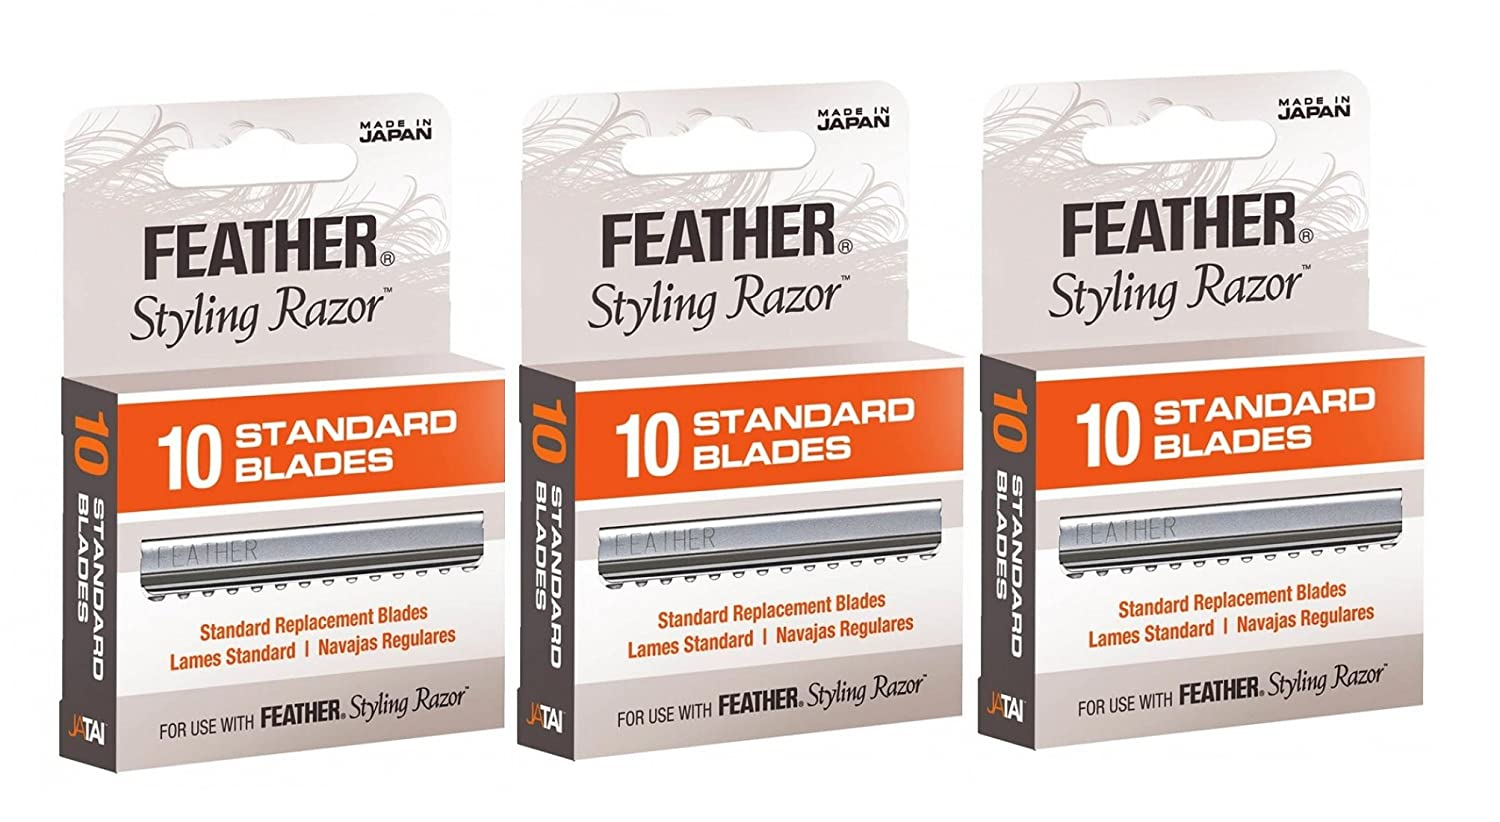 Feather Styling Razor Blades 30 count assorted